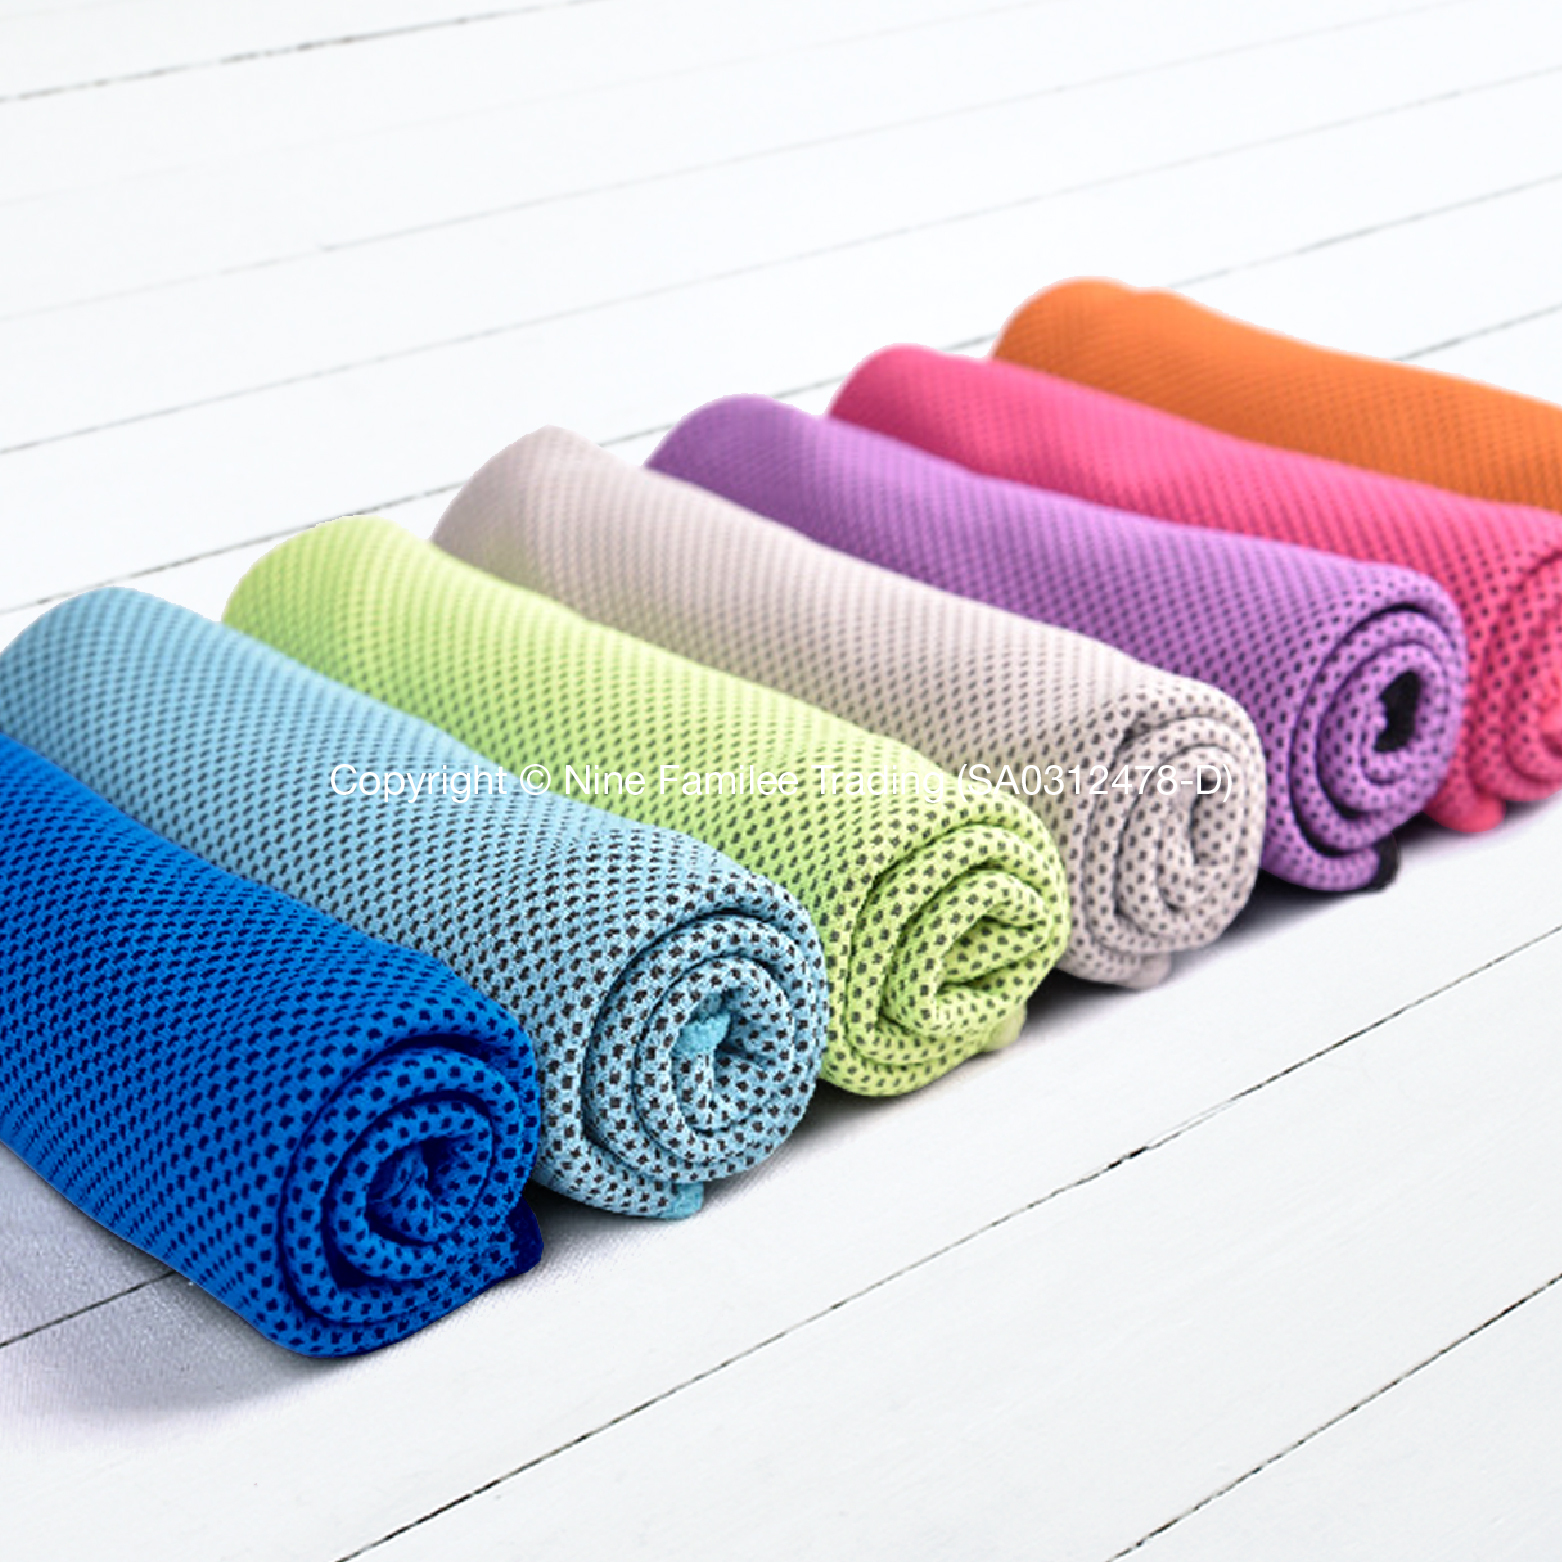 Products - Cooling Towel Bottle-02.jpg